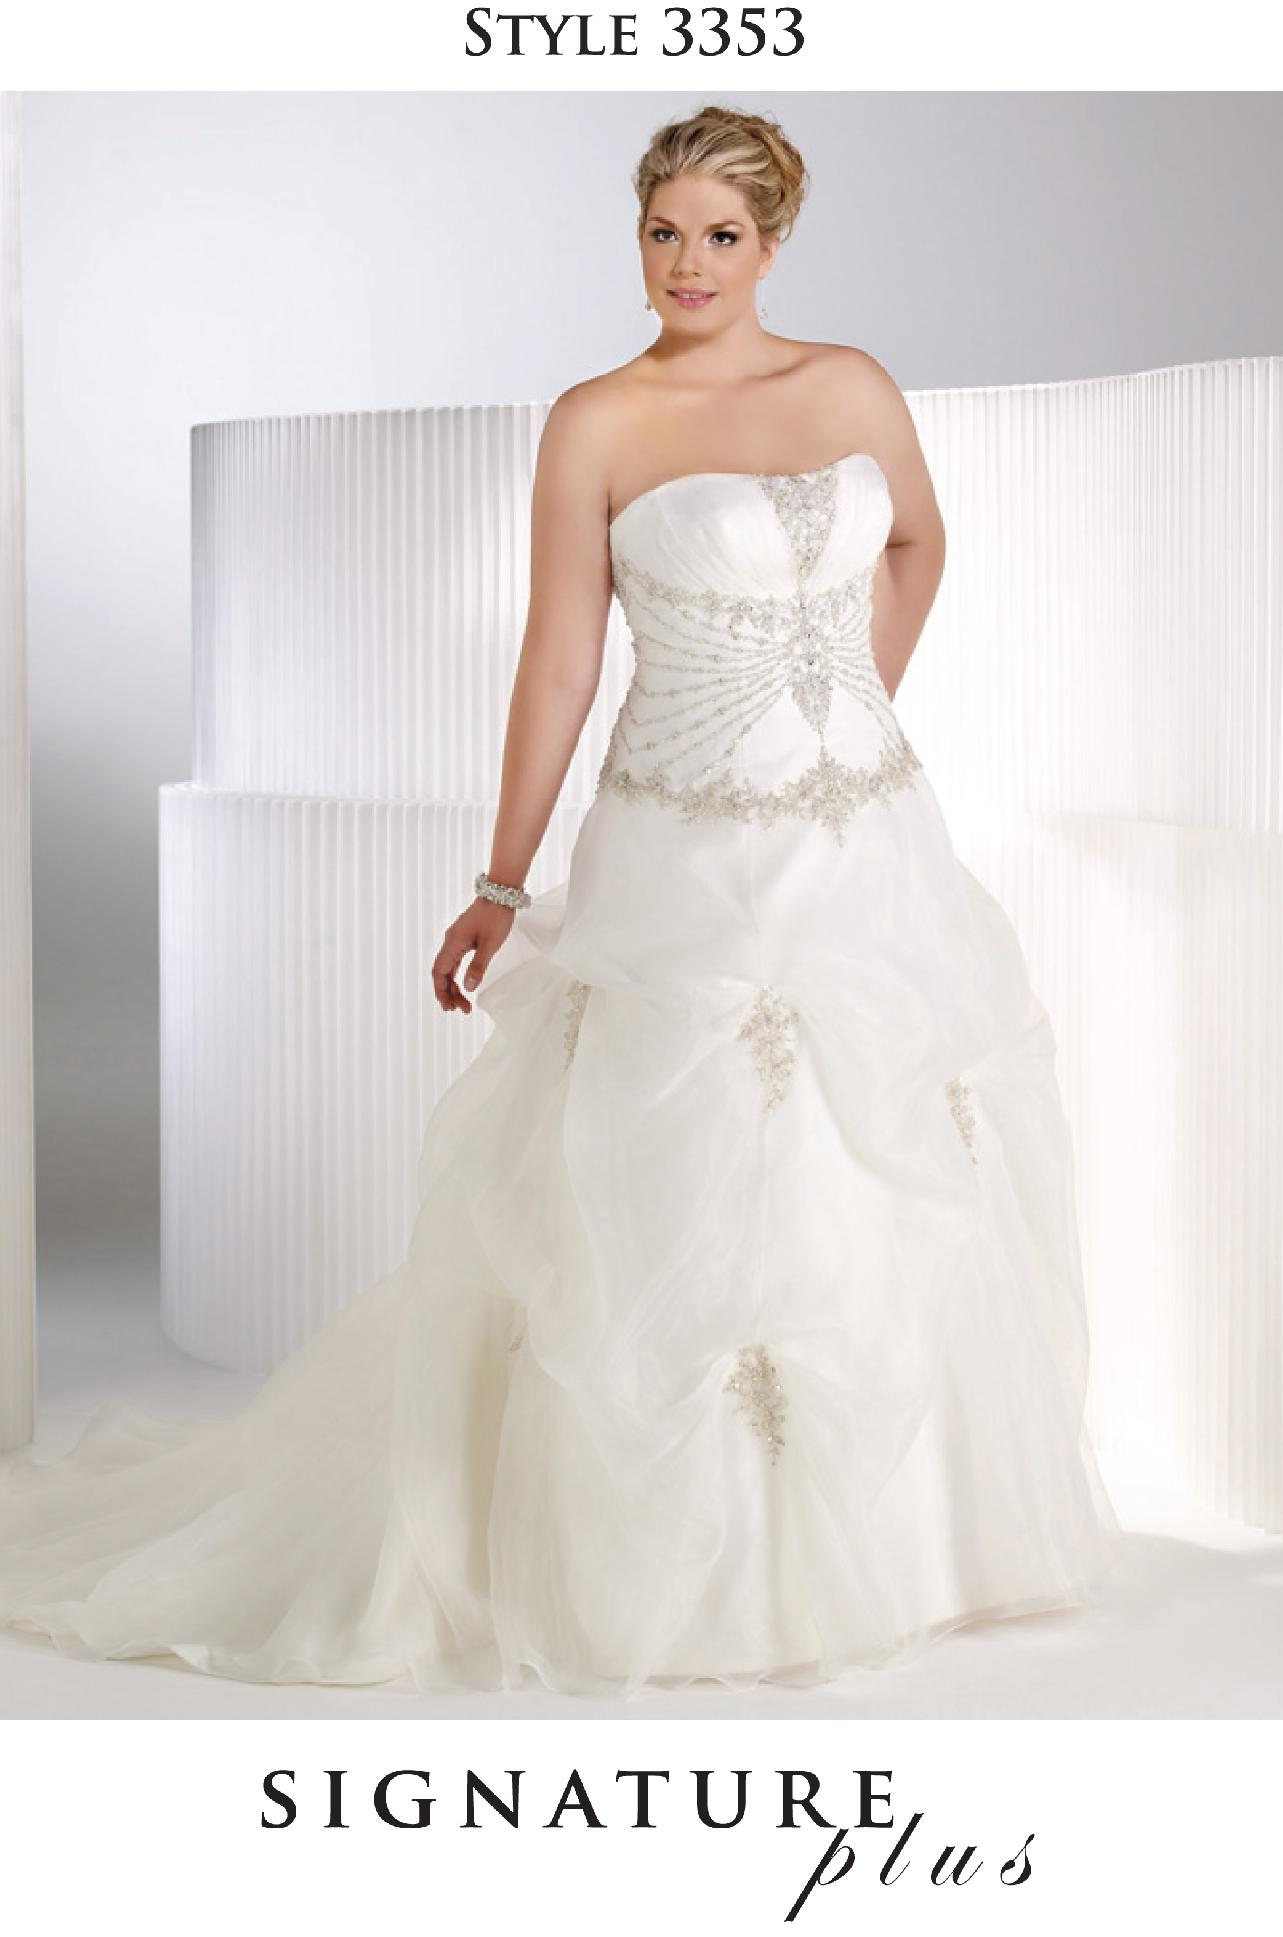 Bridal Wedding Dress Ivory/Silver #3353 SIGNATURE PLUS Privat Label ...